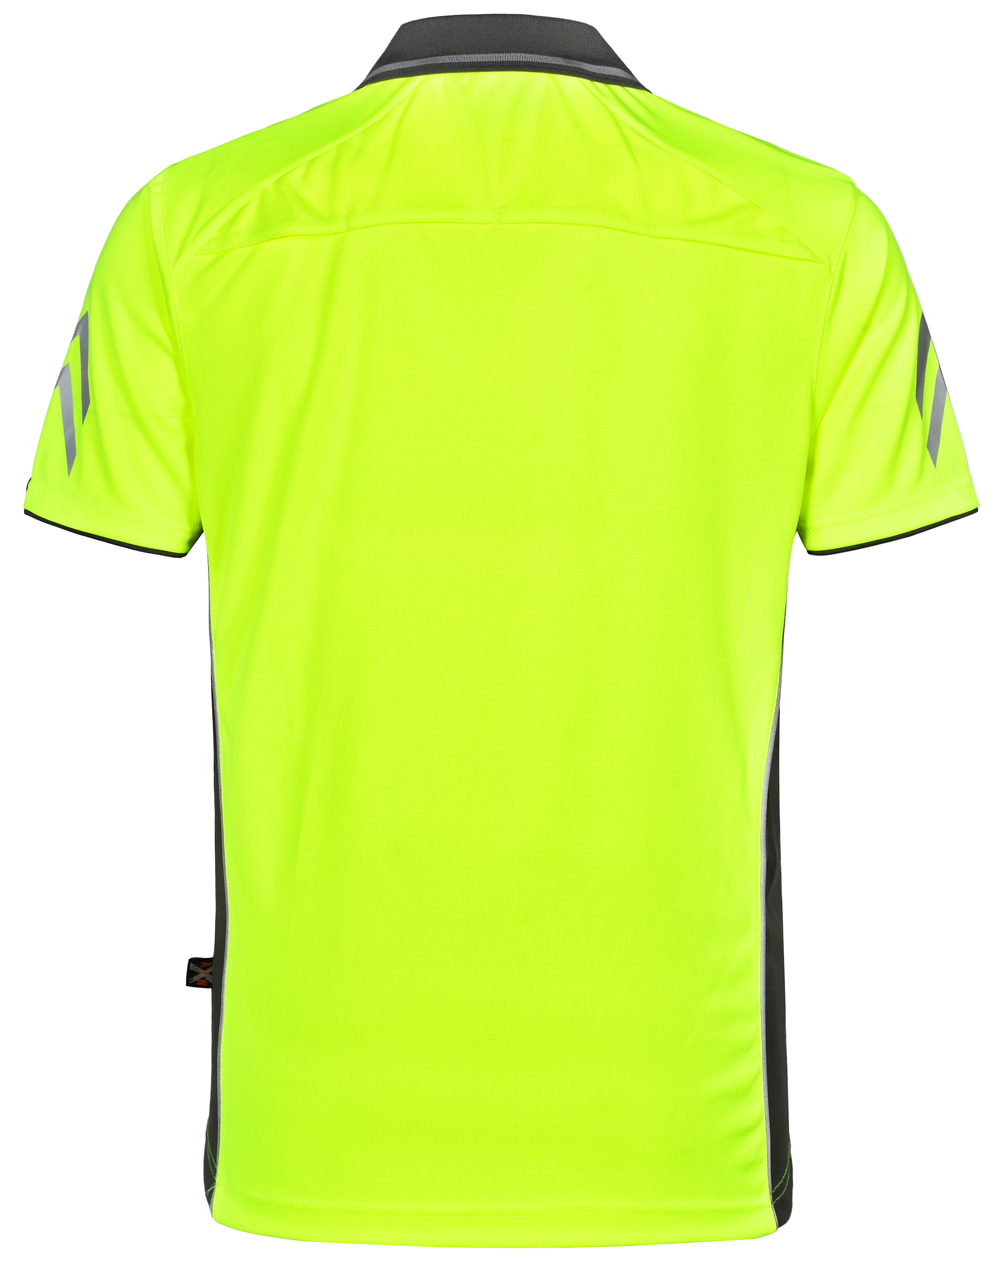 PS210 UNISEX COOLDRY® VENTED POLO